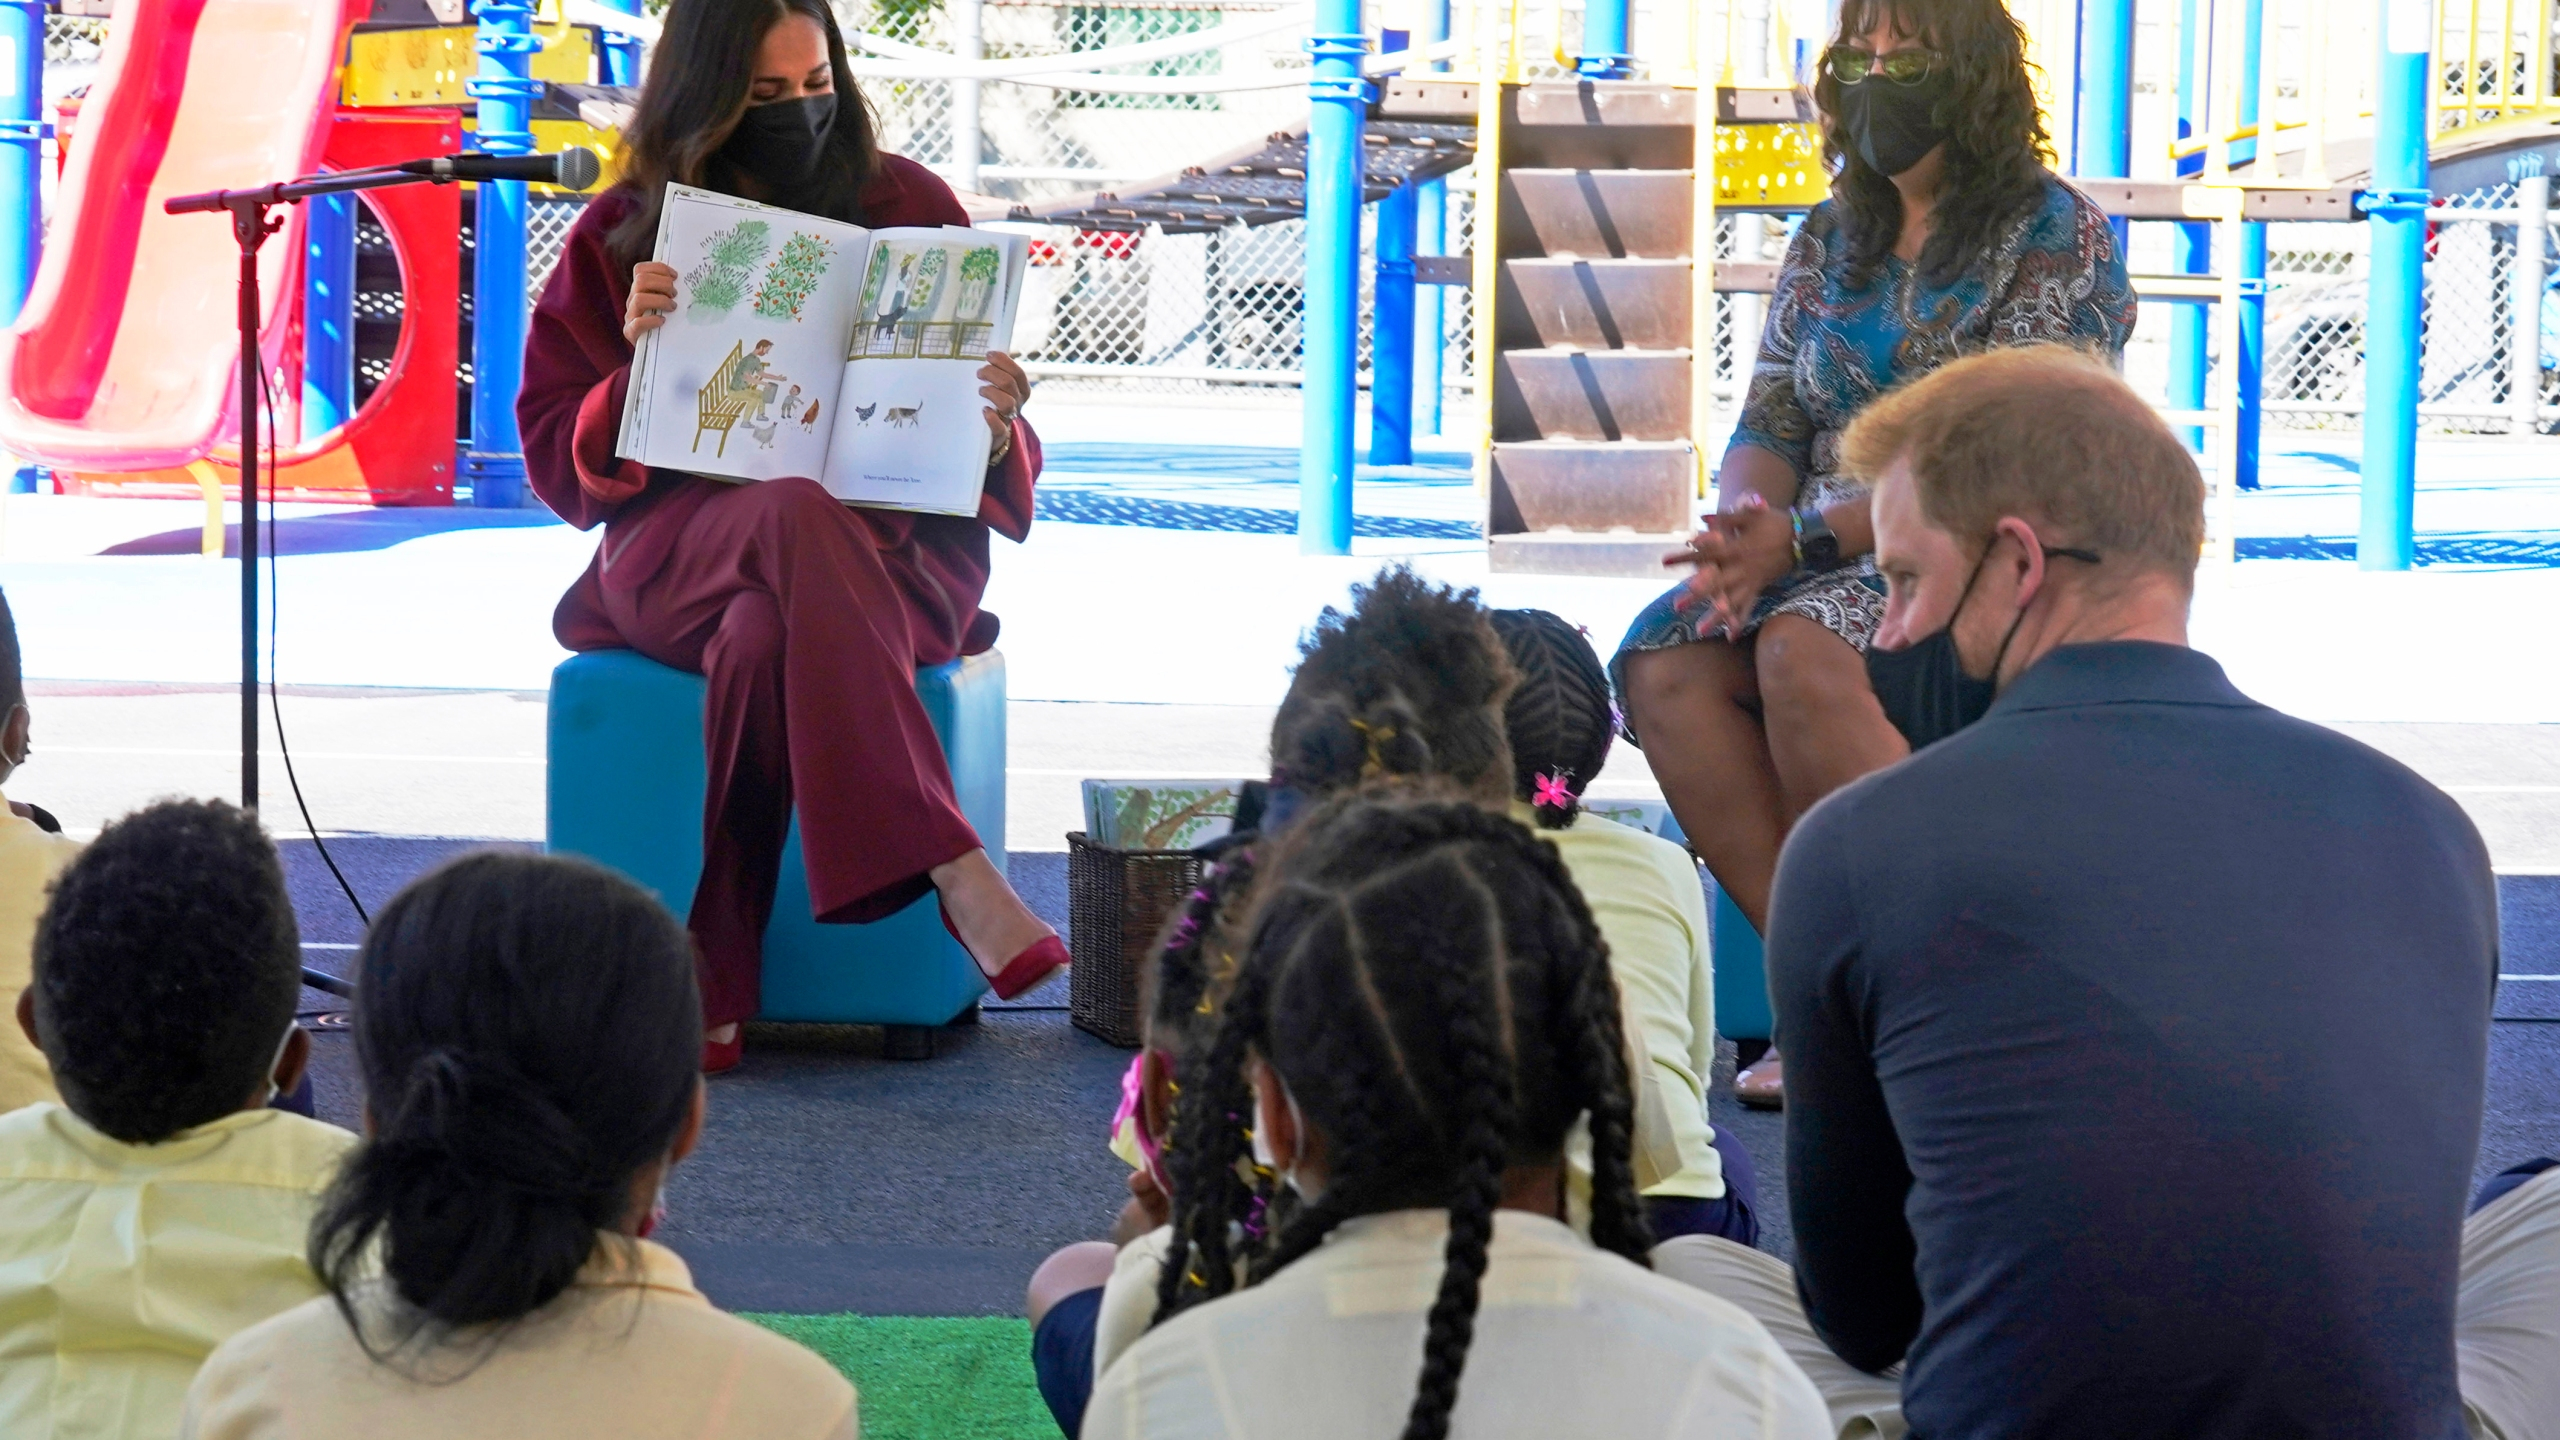 """Meghan, the Duchess of Sussex, reads from her book """"The Bench,"""" as Prince Harry, the Duke of Sussex, foreground right, and second grade students listen, during their visit to P.S. 123, the Mahalia Jackson School, in New York's Harlem neighborhood on Sept. 24, 2021. (AP Photo/Richard Drew)"""